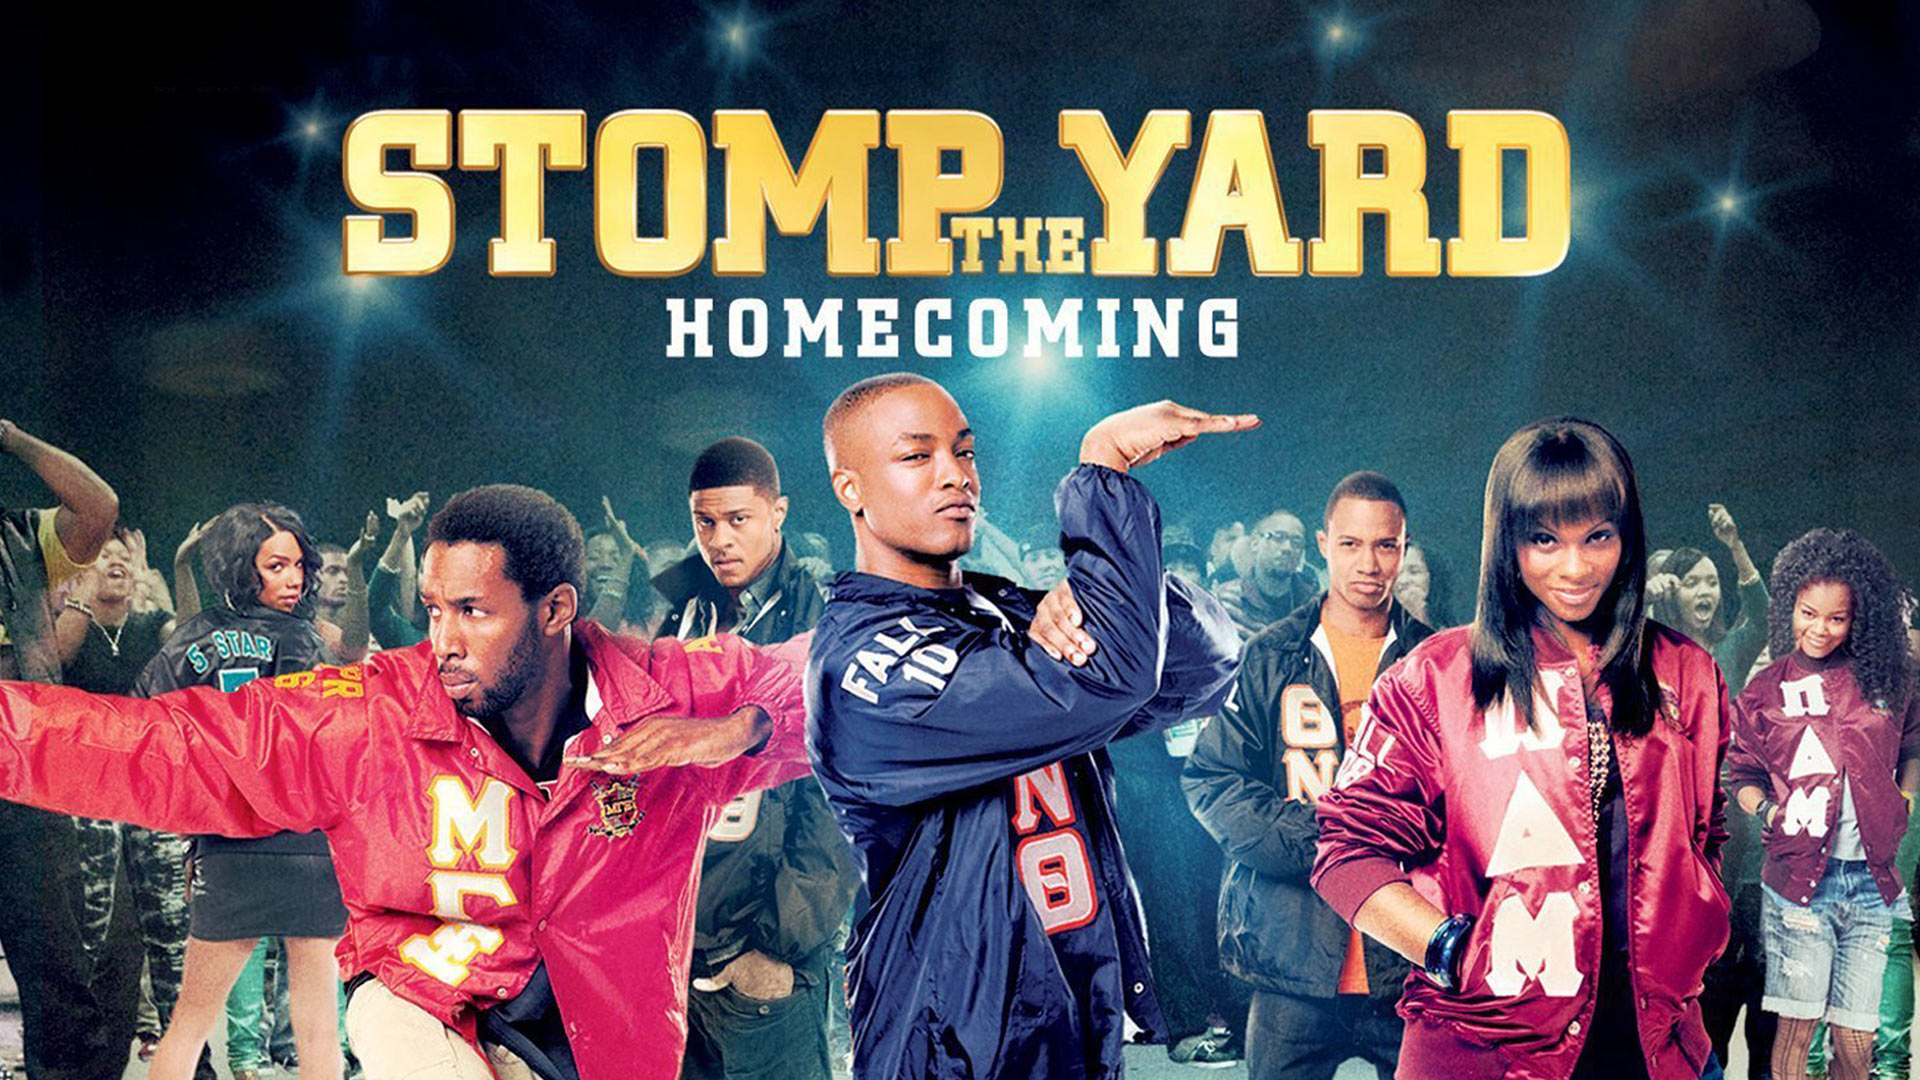 Watch Stomp The Yard Prime Video